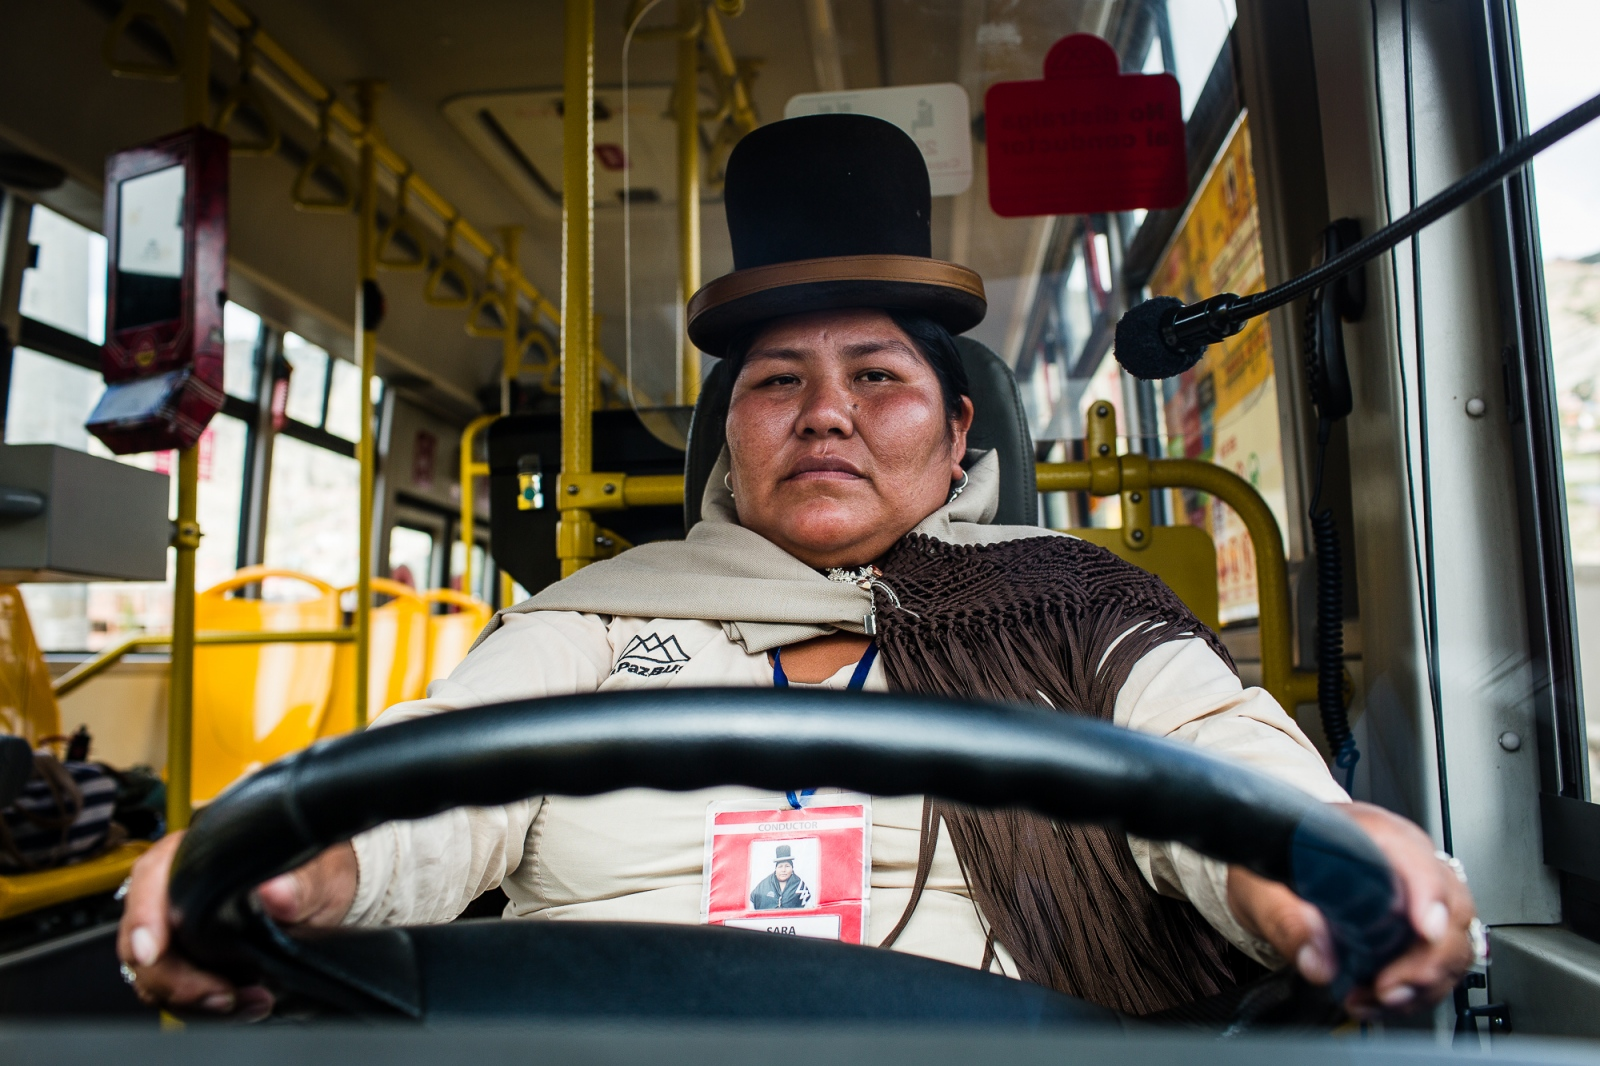 "Sara Mamani on the wheel of the bus that she drives daily through the streets of La Paz. Sara is the second ""cholita"" to ever drive a bus in La Paz. She started to drive first small vans with passengers as a way to make money to feed her children after the separation from her partner, then she went to drive bigger buses. Sara loves it so much that wishes to become an international truck driver; she is just waiting for her children to grow up so she can follow her dream."